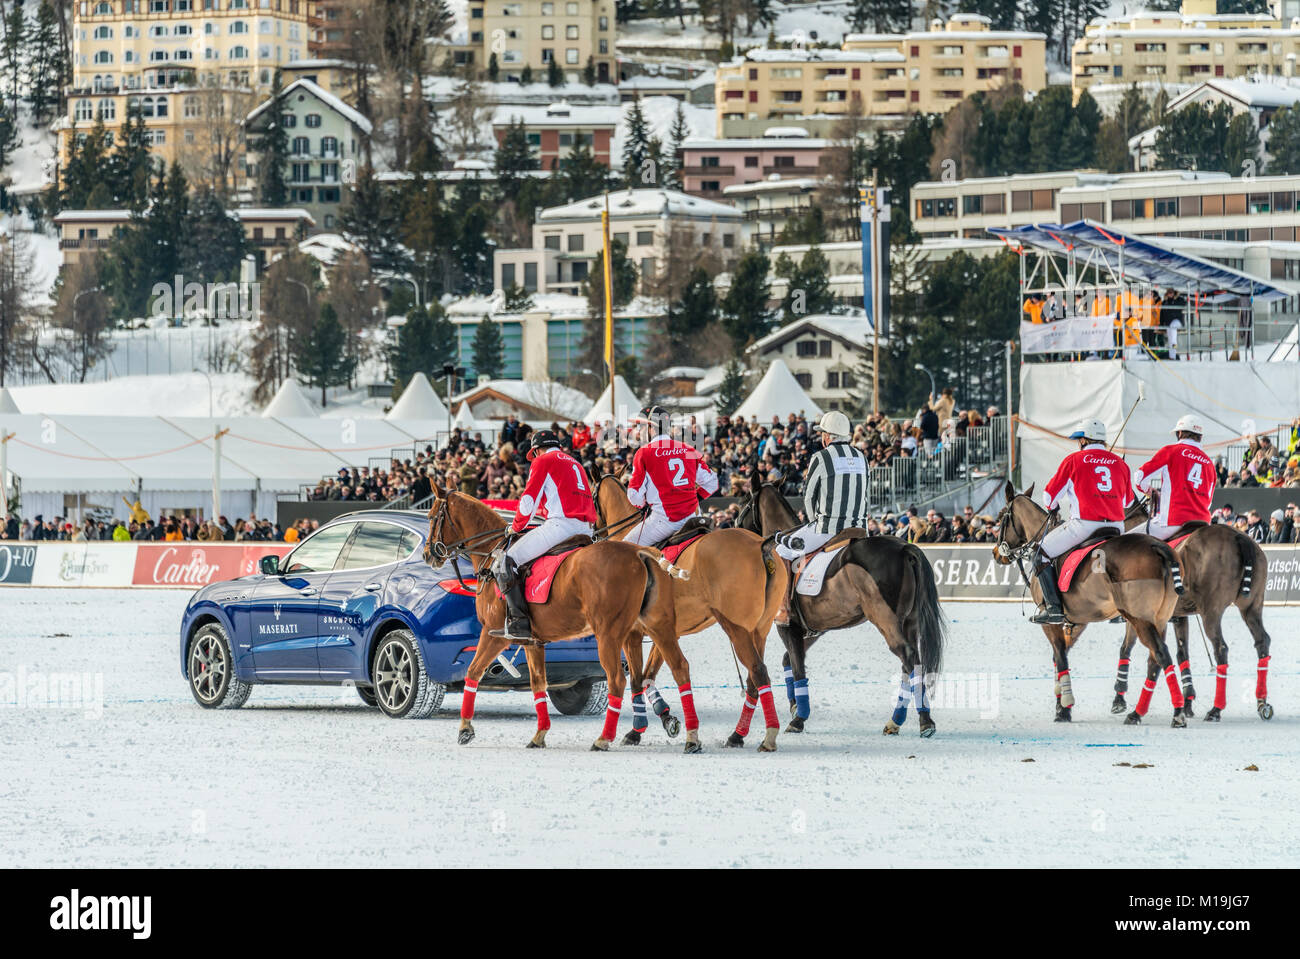 St.Moritz, Switzerland. 28th Jan, 2018. Members of the 'Cartier' team behind a Maserati Sponsor car during - Stock Image